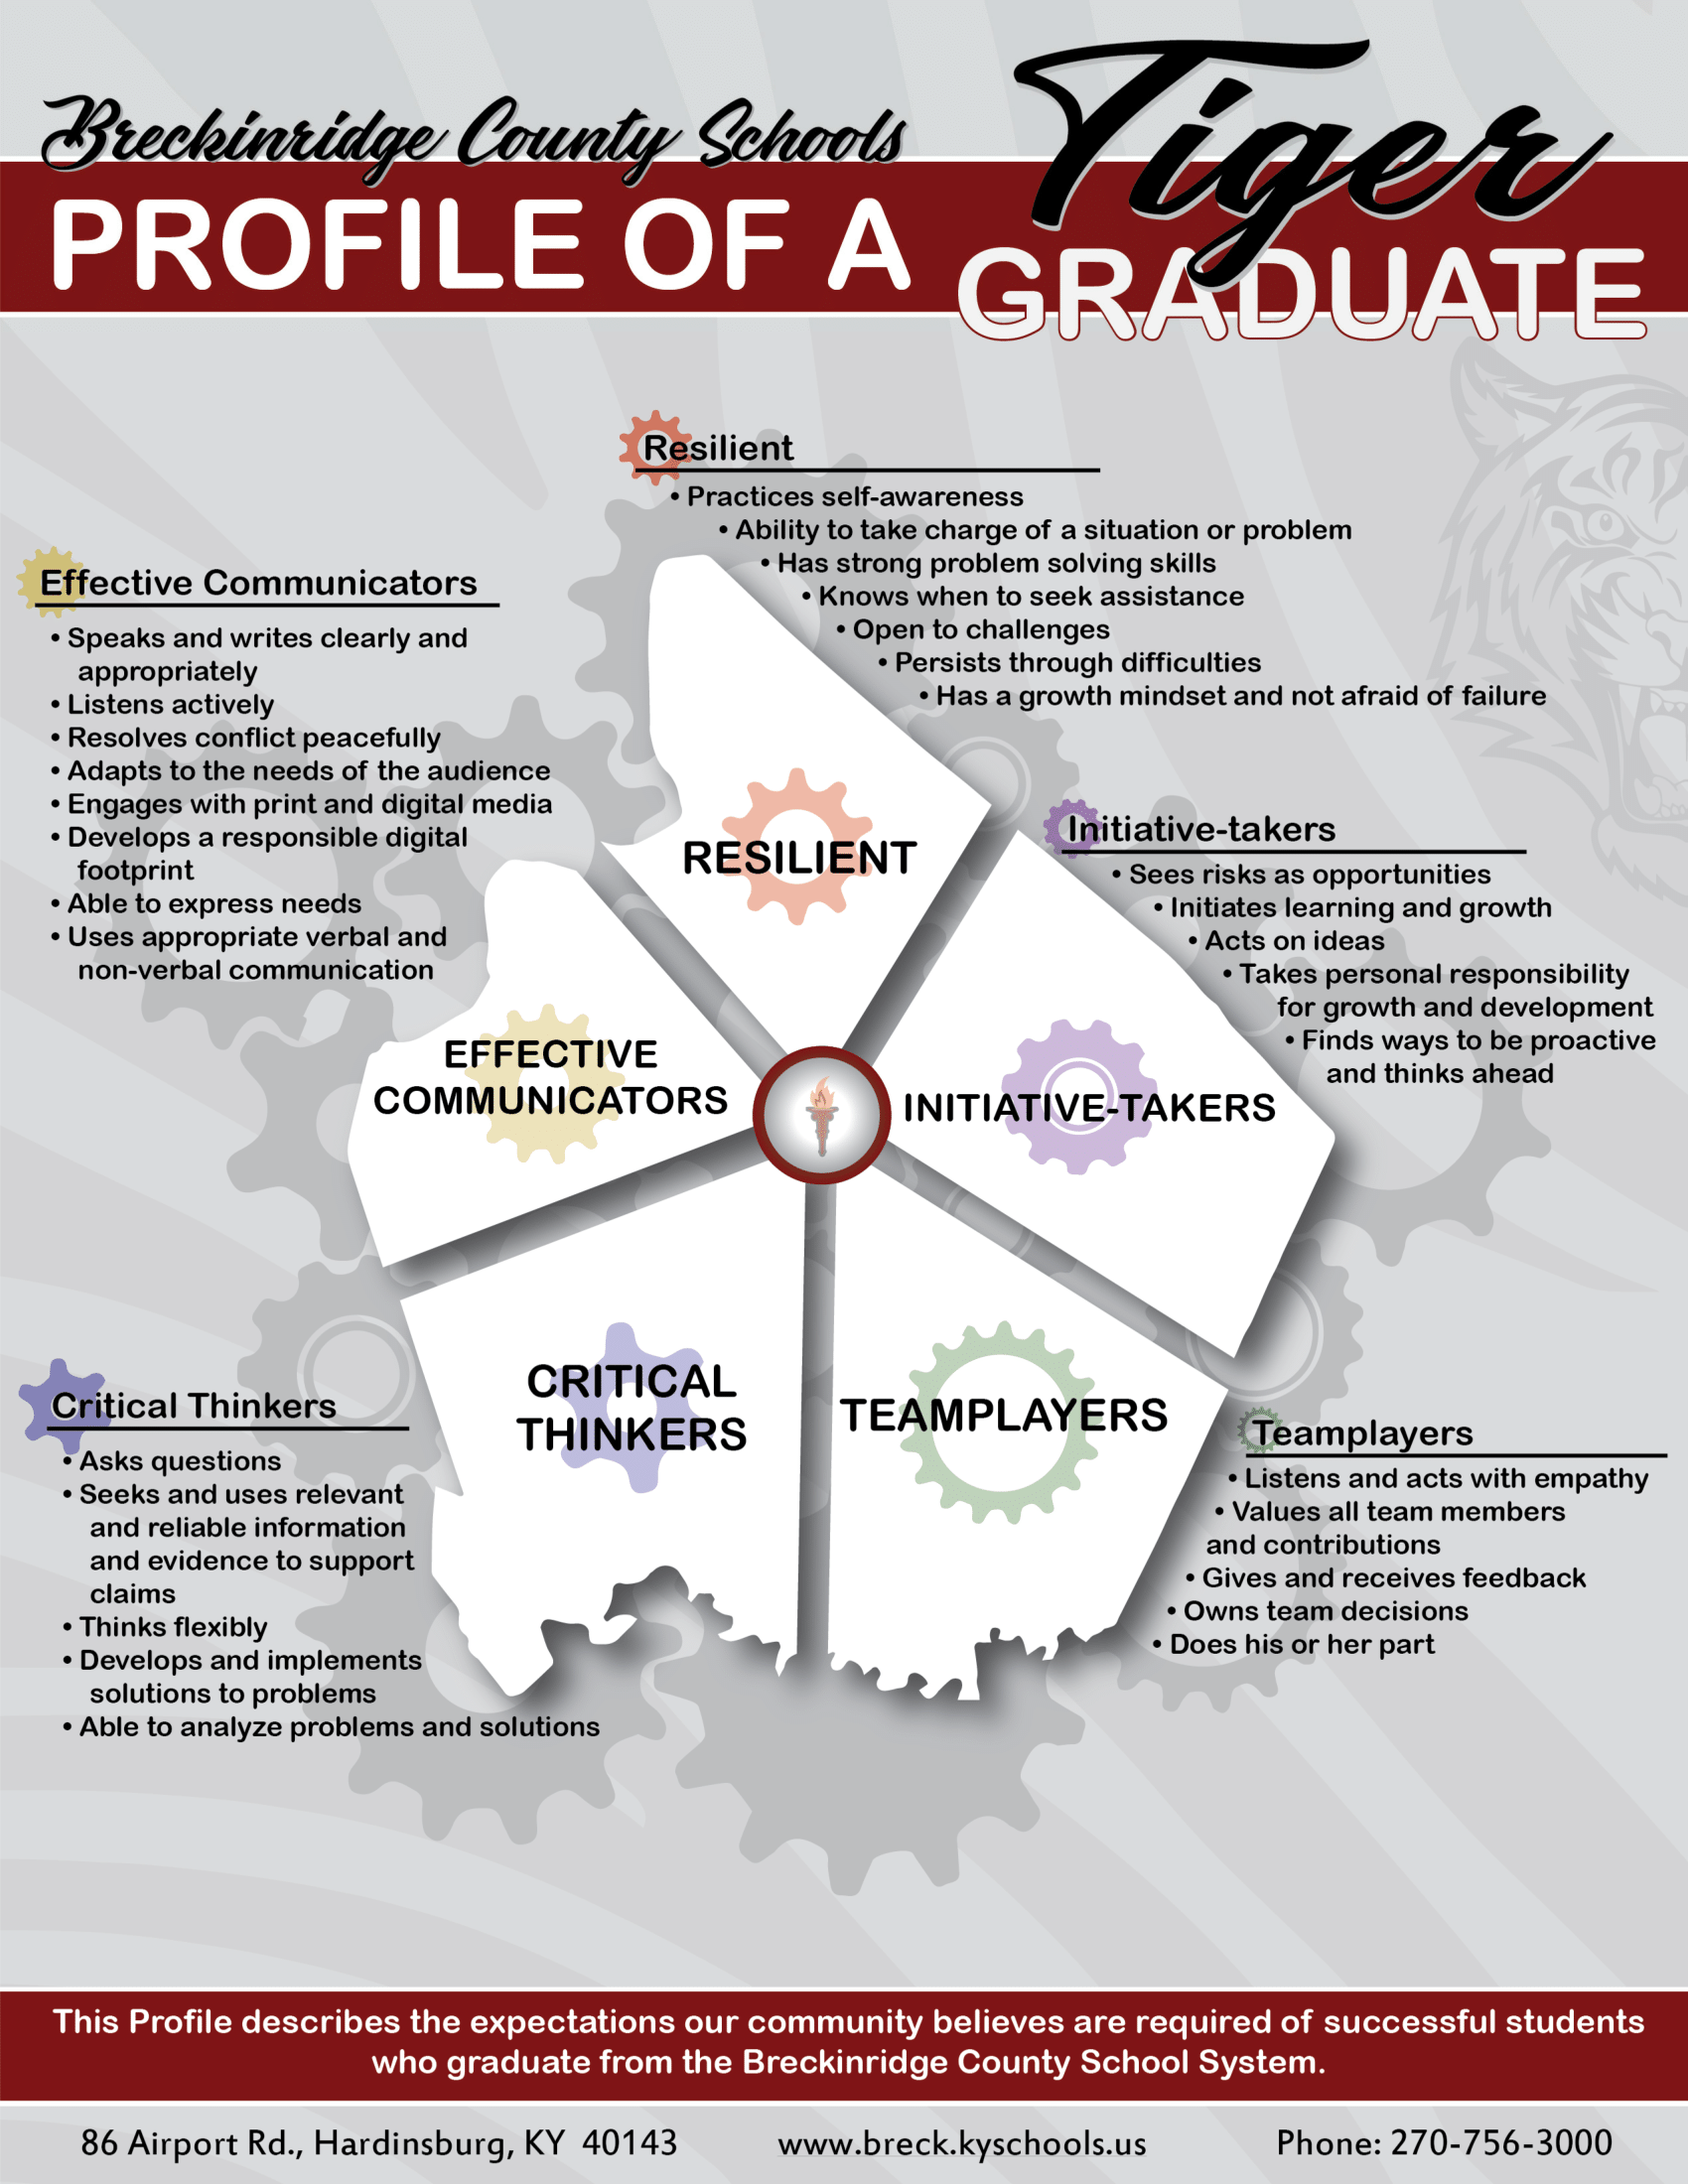 BC_-_Profile_of_a_Graduate-1